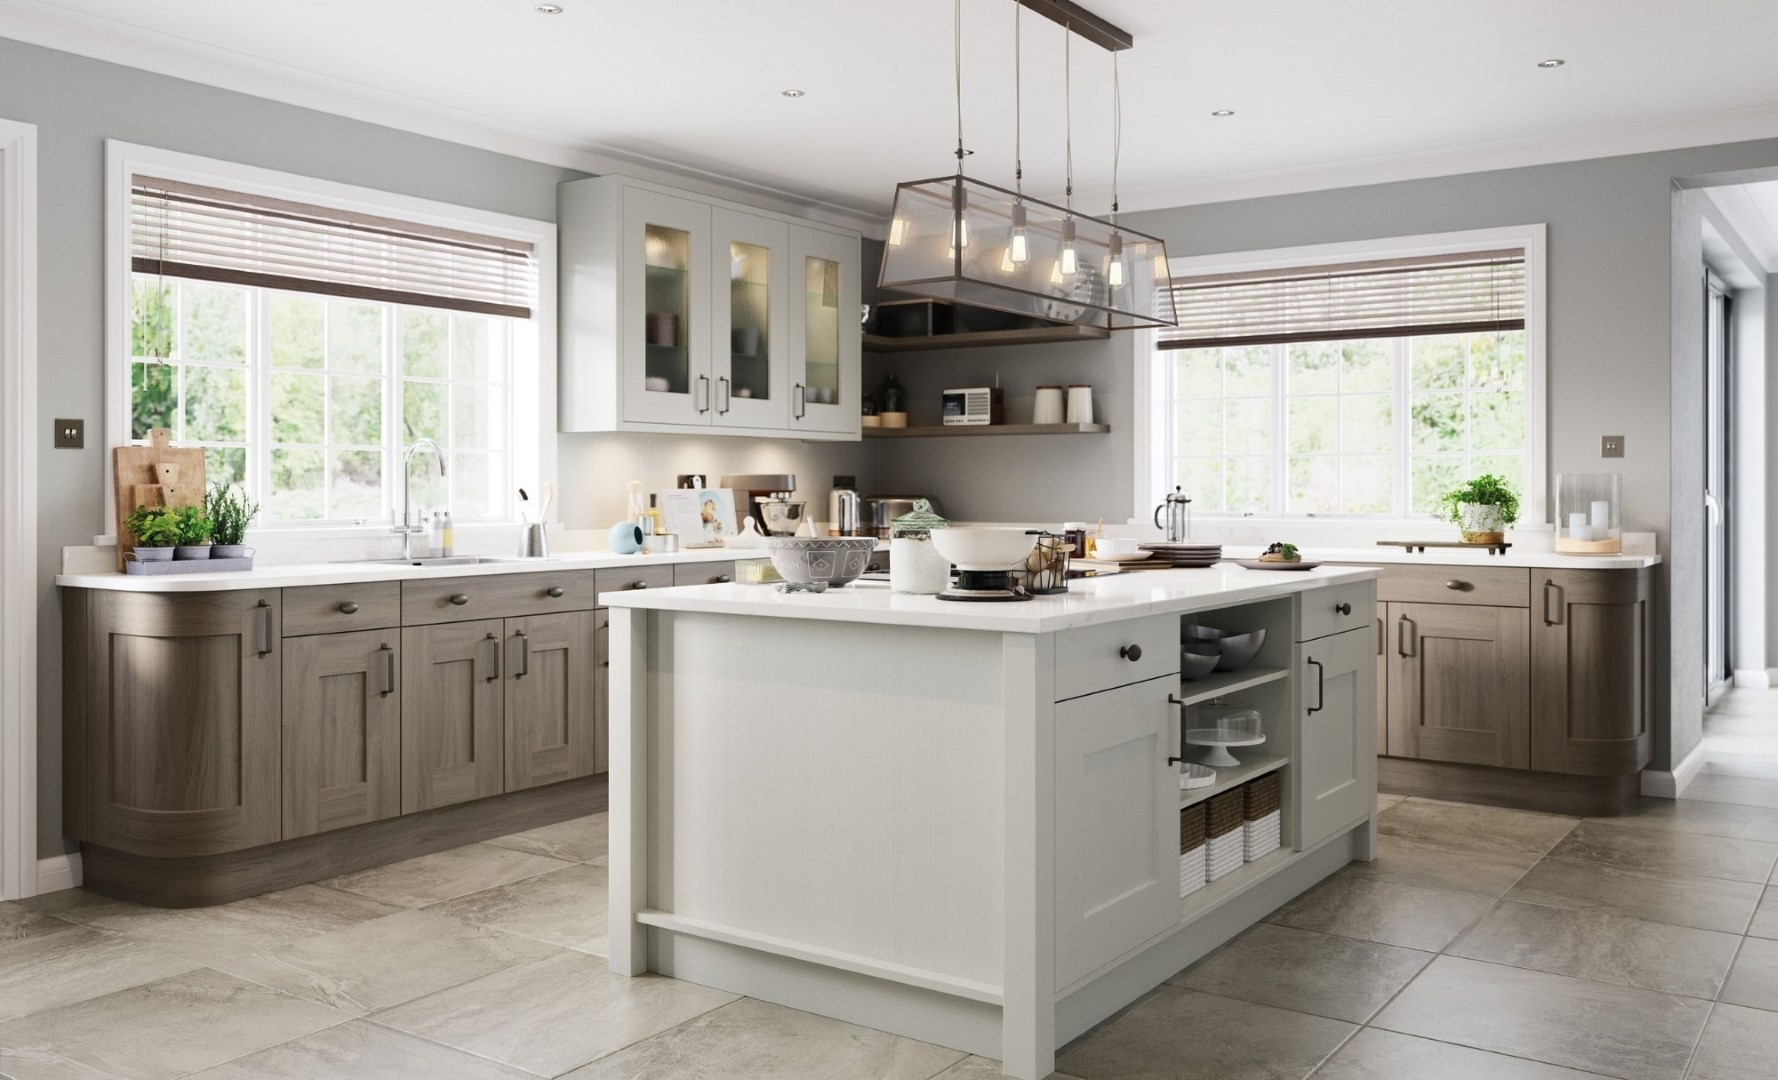 Traditional Classic Kitchen - Clonmel Painted Light Grey, Stained Carbon - Kitchen Design - Alan Kelly Kitchens - Waterford